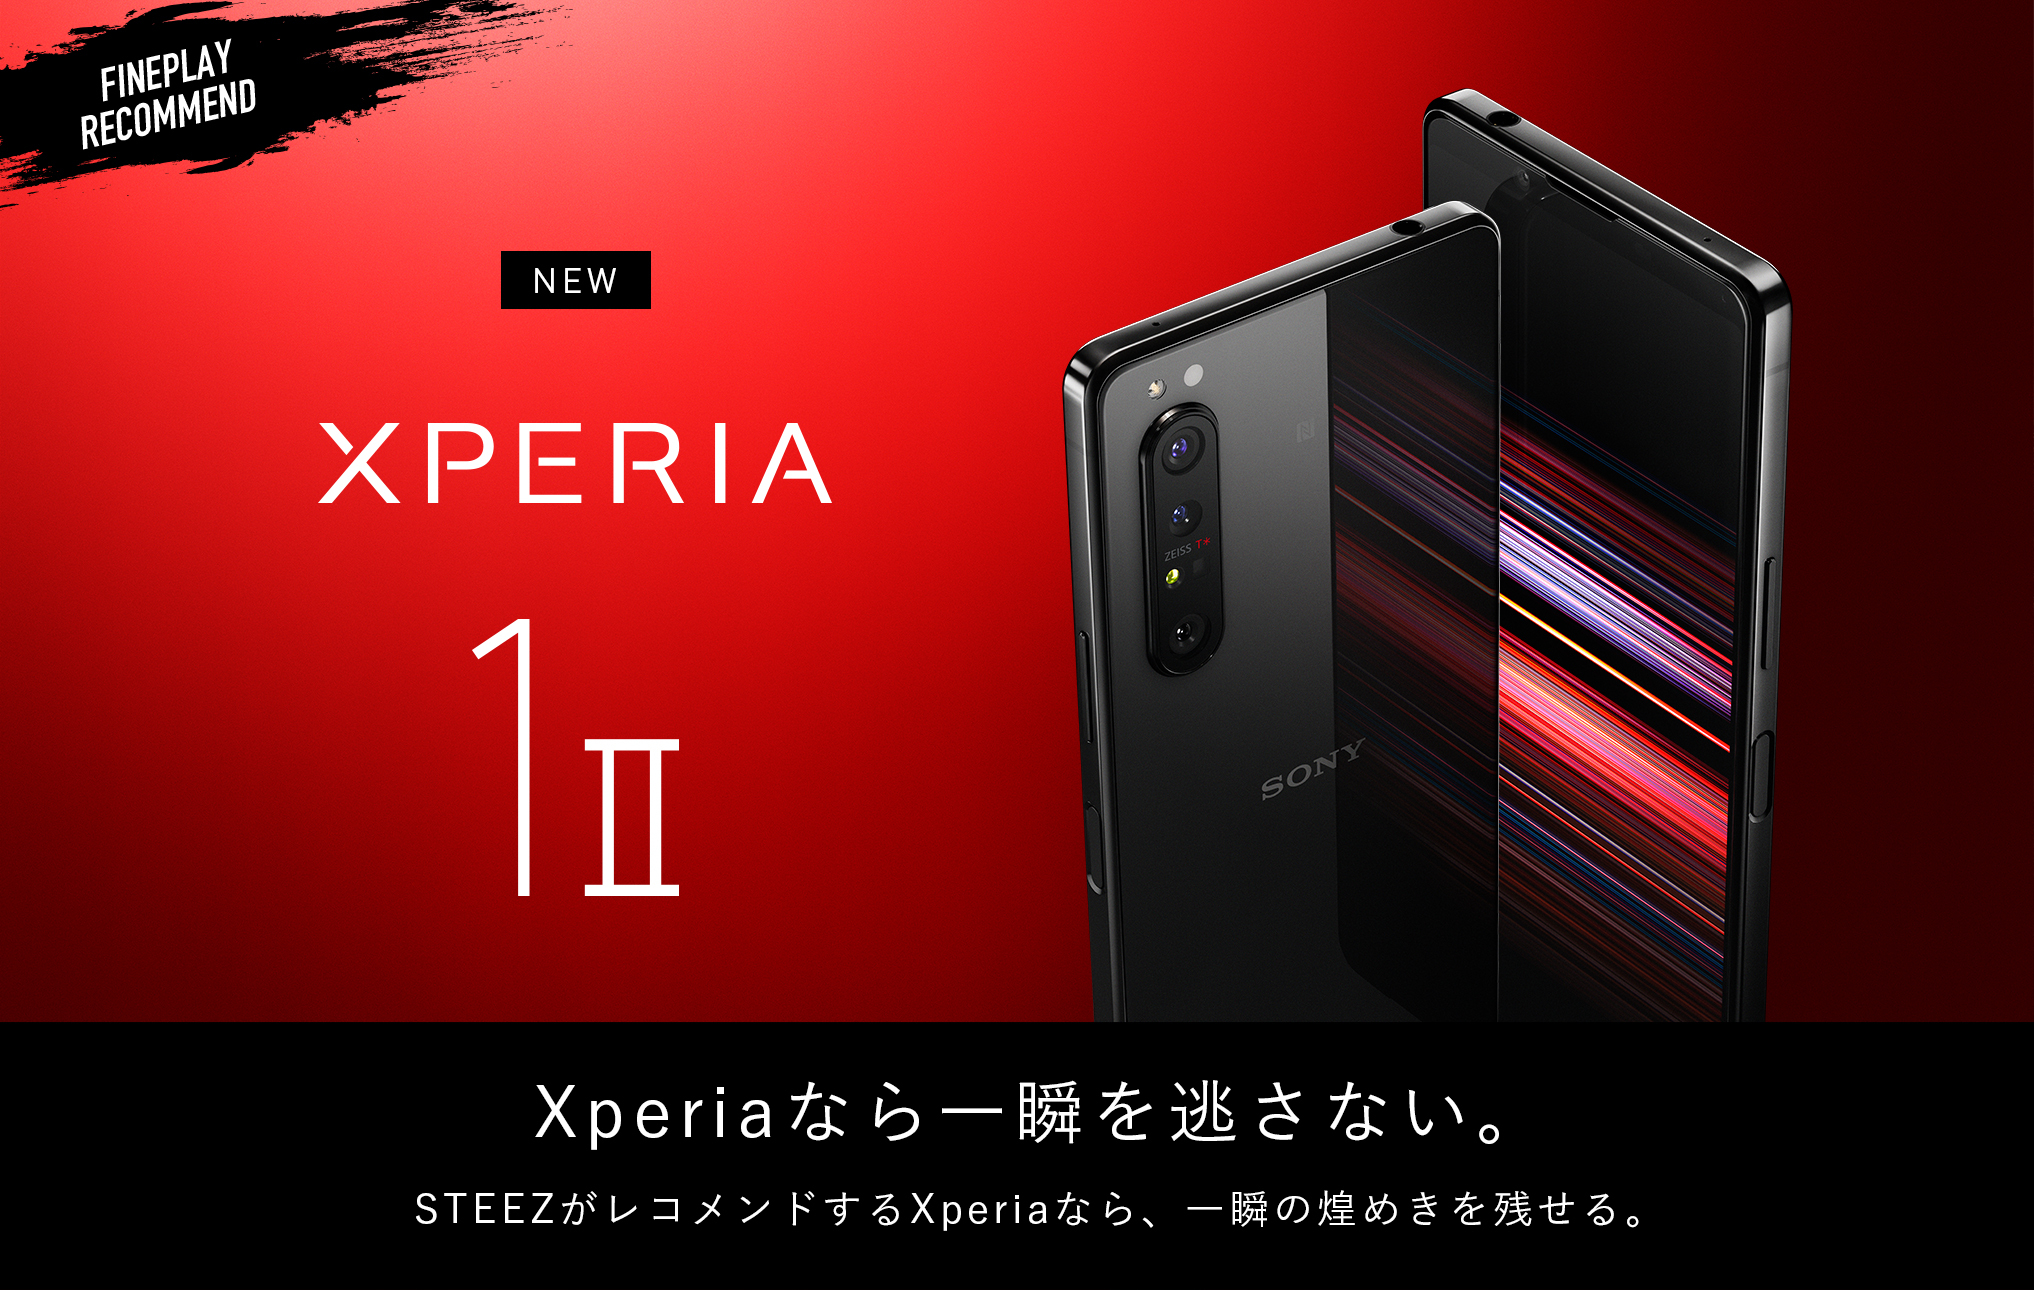 Xperia_banner_steez